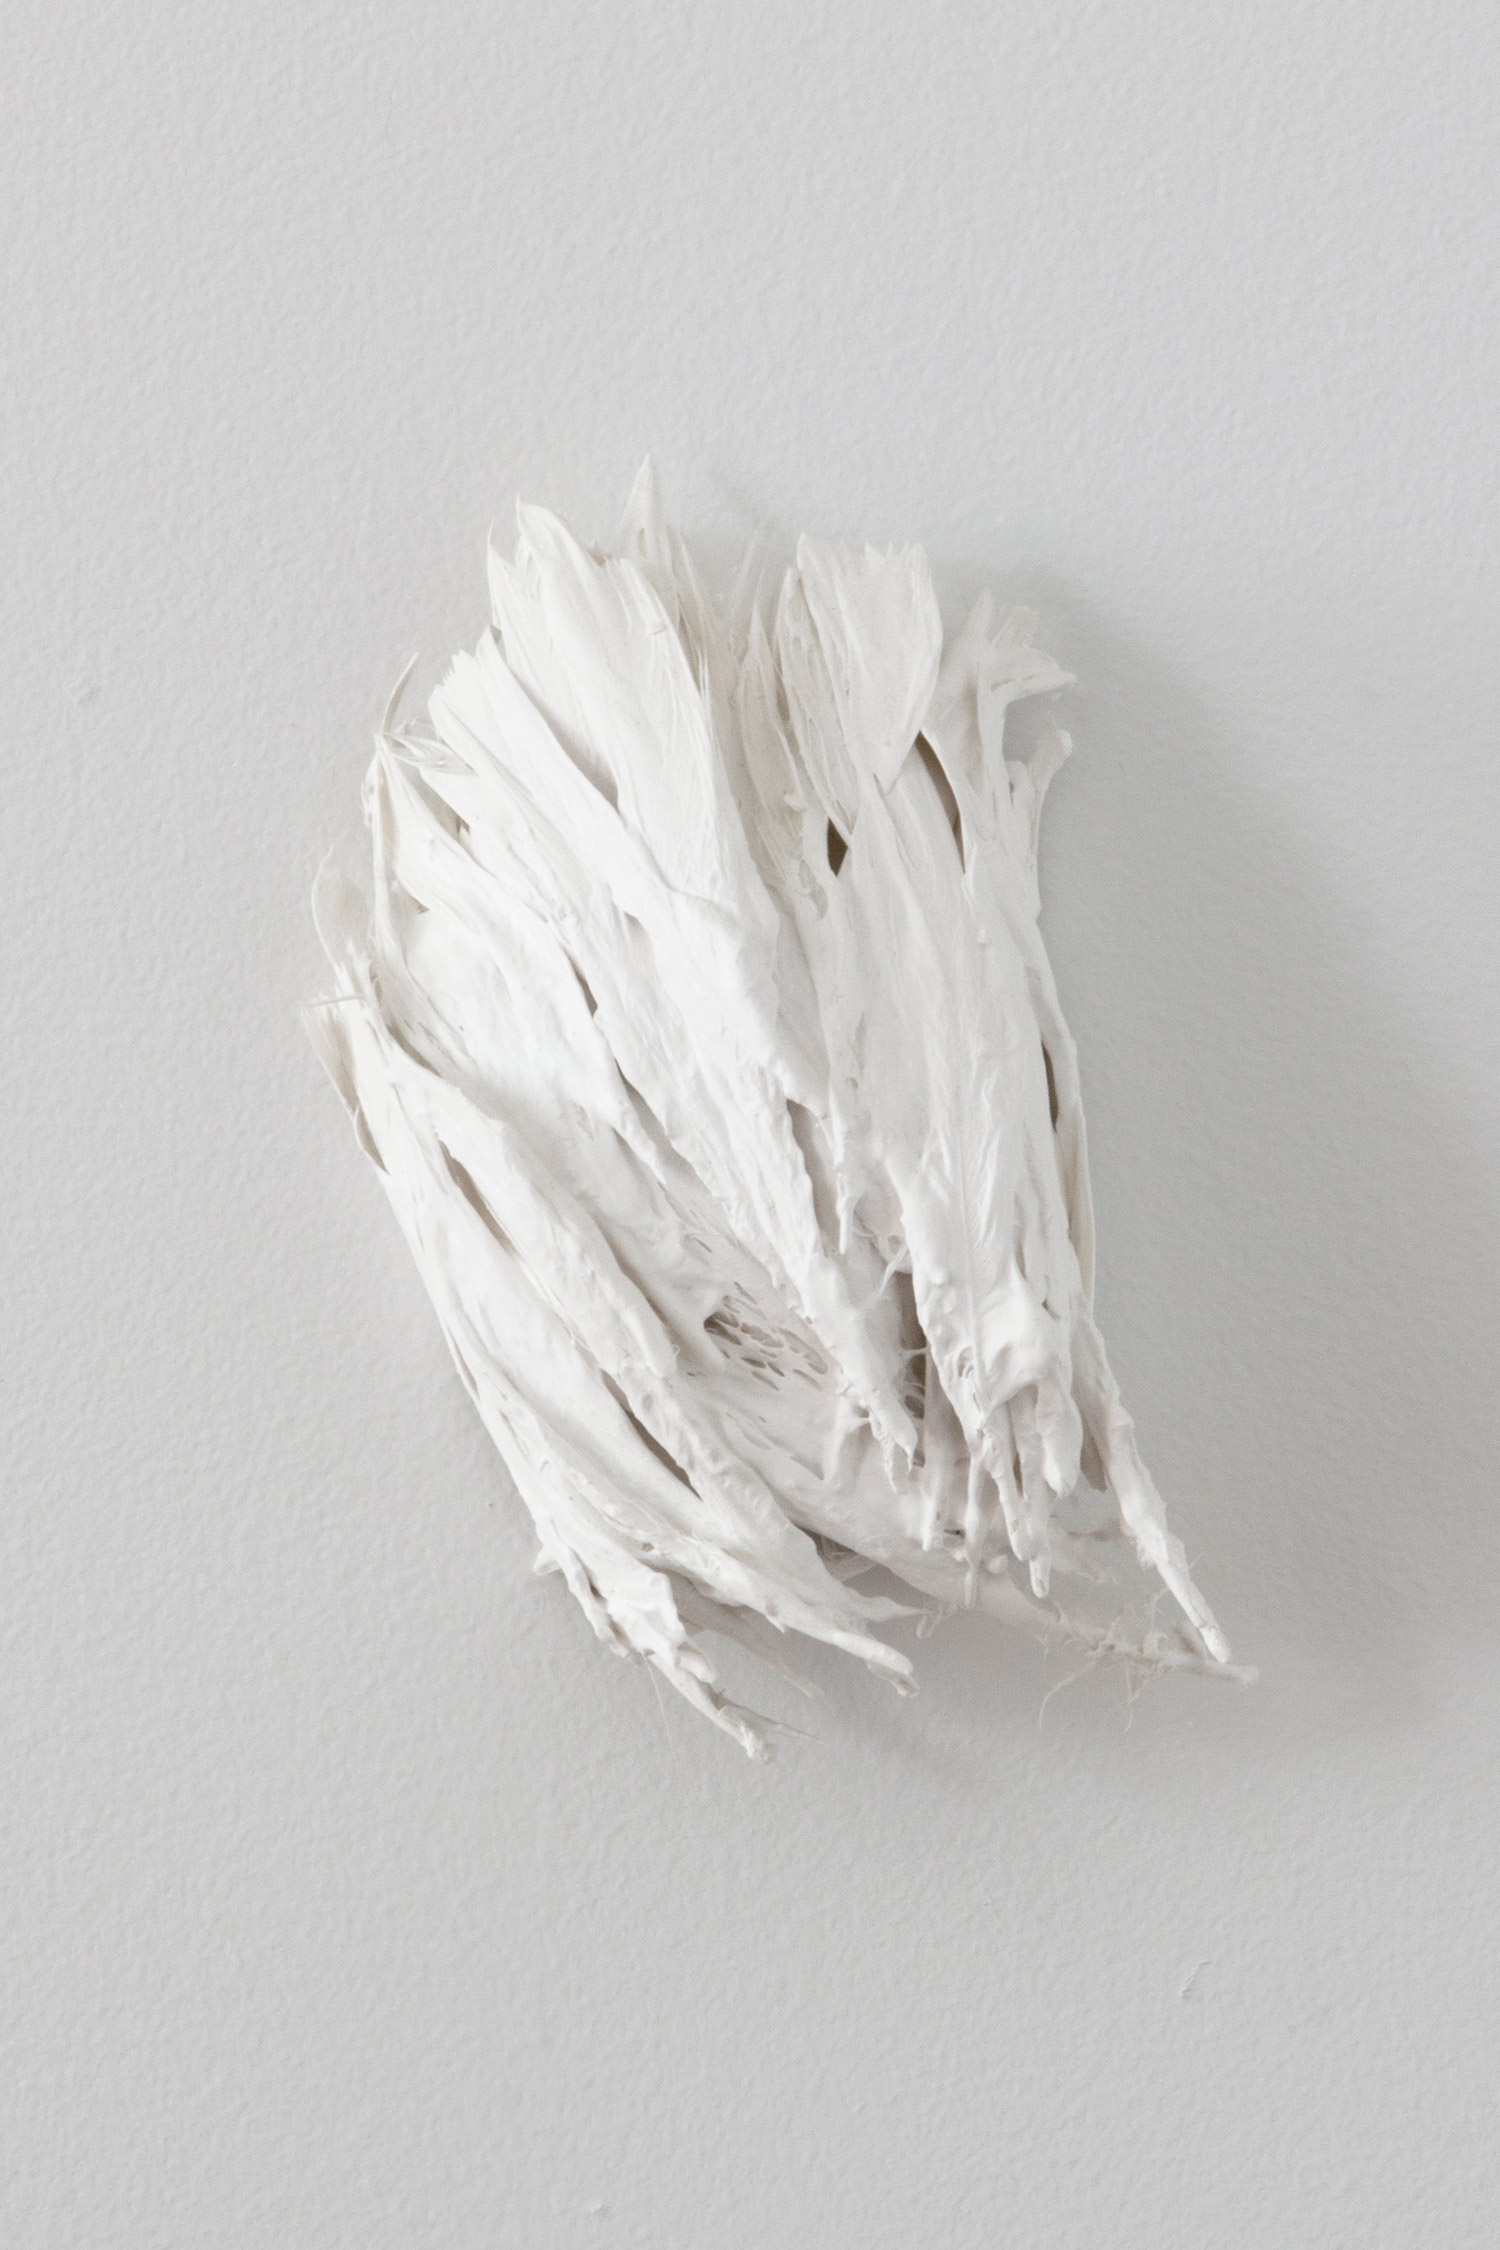 Feders   2014 plaster, feathers 6 x 7 x 3 inches